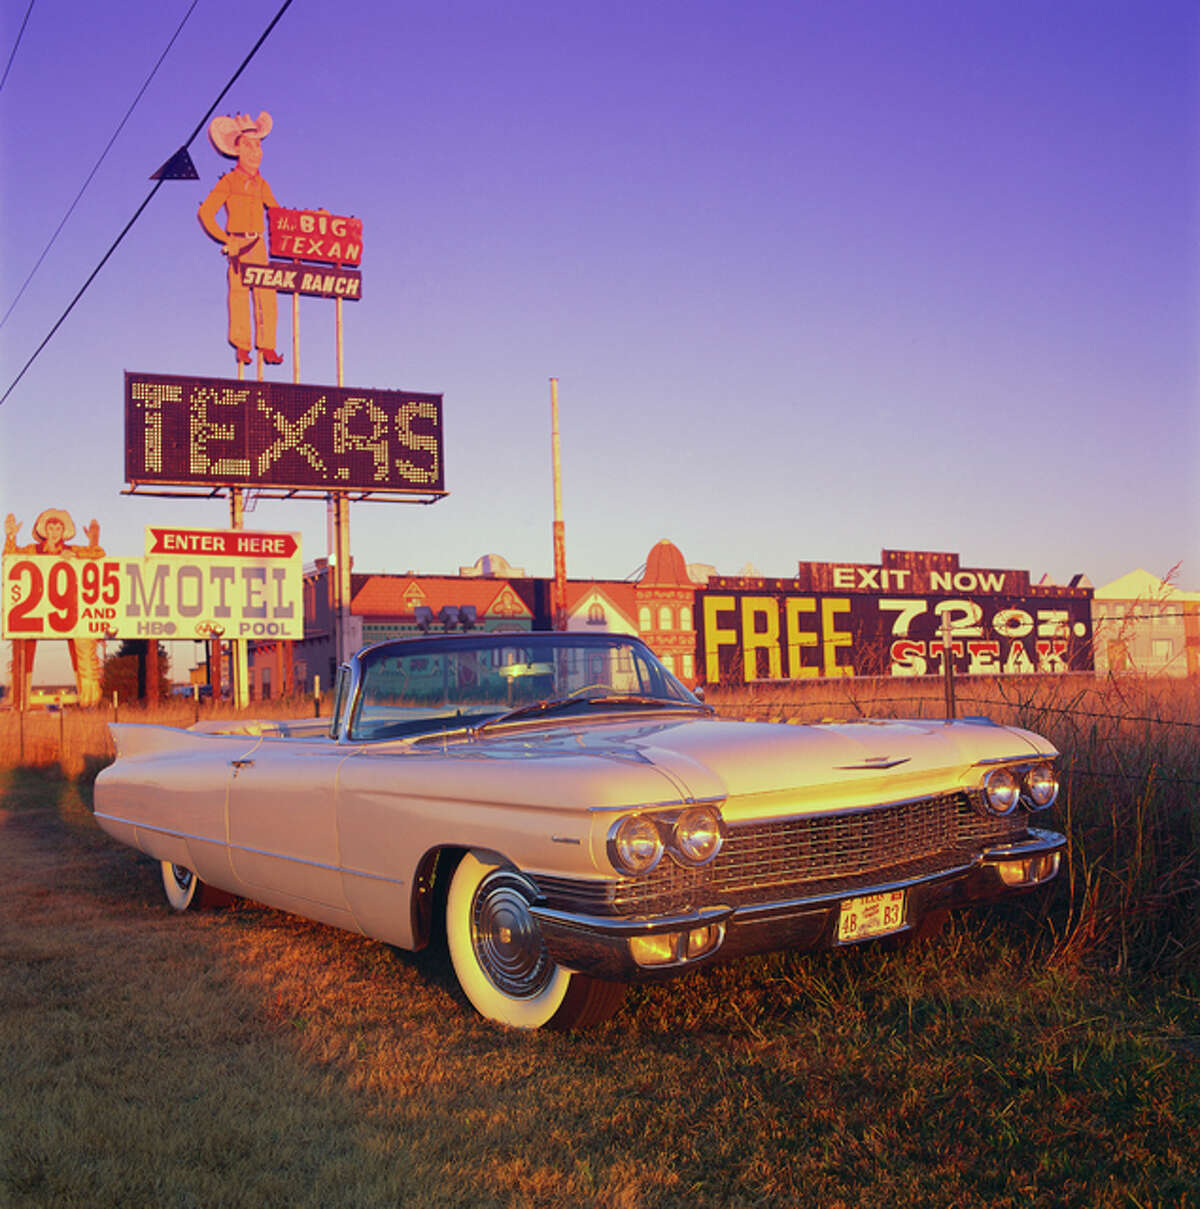 Photos: Route 66 in Texas ... See some of the historic sites that make up the Texas stretch of the iconic Route 66.